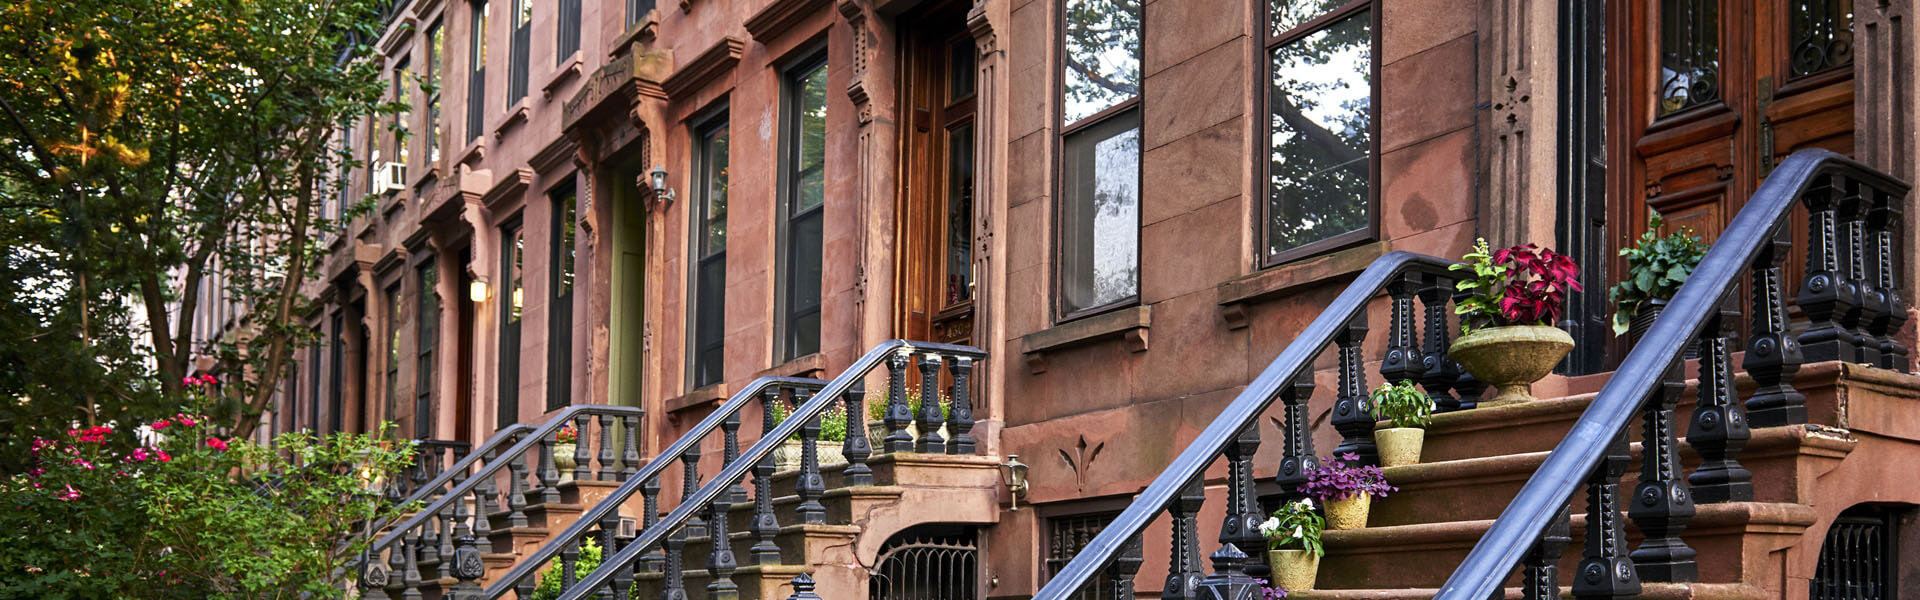 Real Estate – brownstones